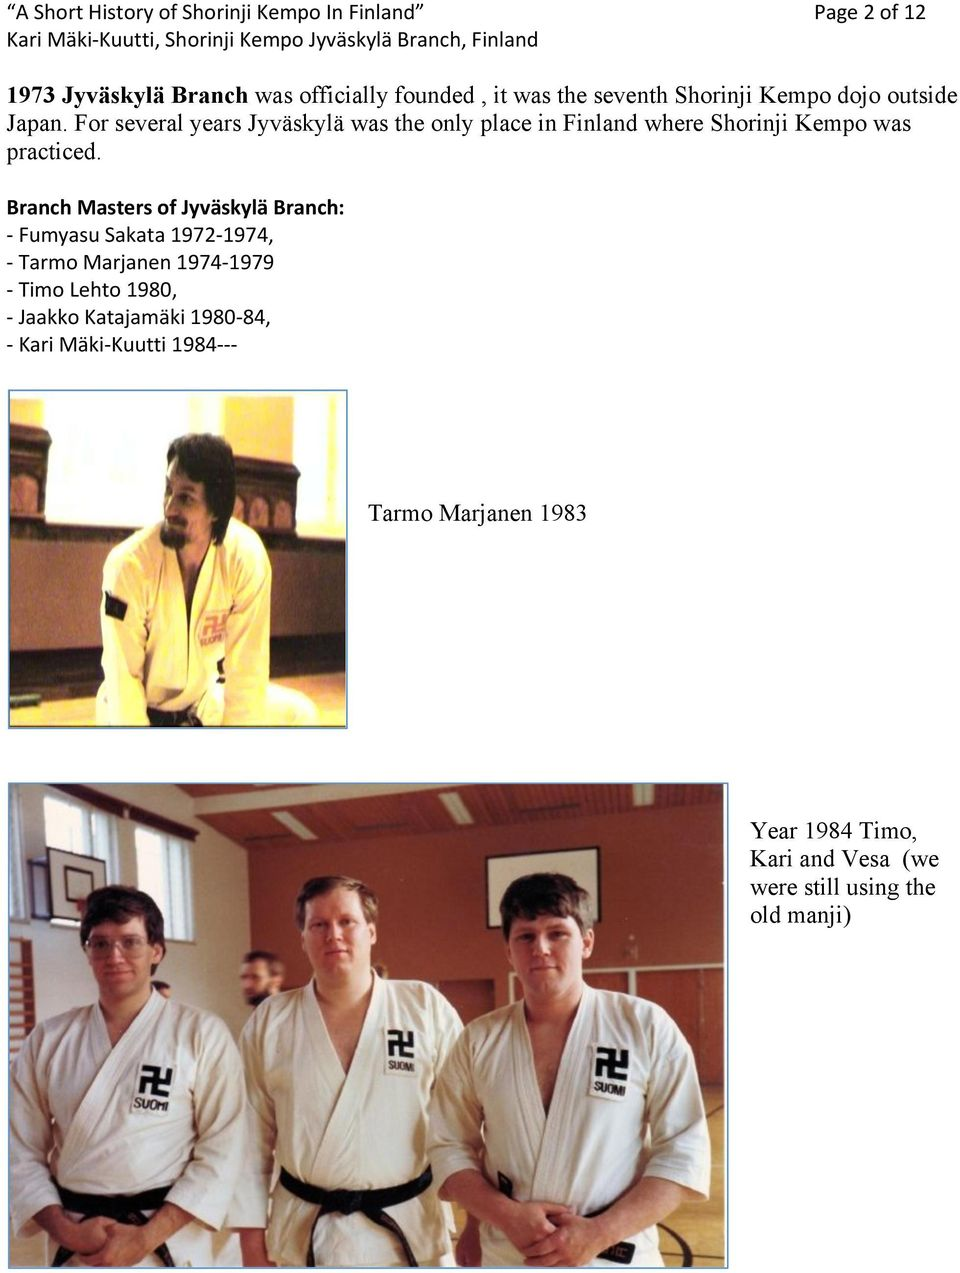 For several years Jyväskylä was the only place in Finland where Shorinji Kempo was practiced.